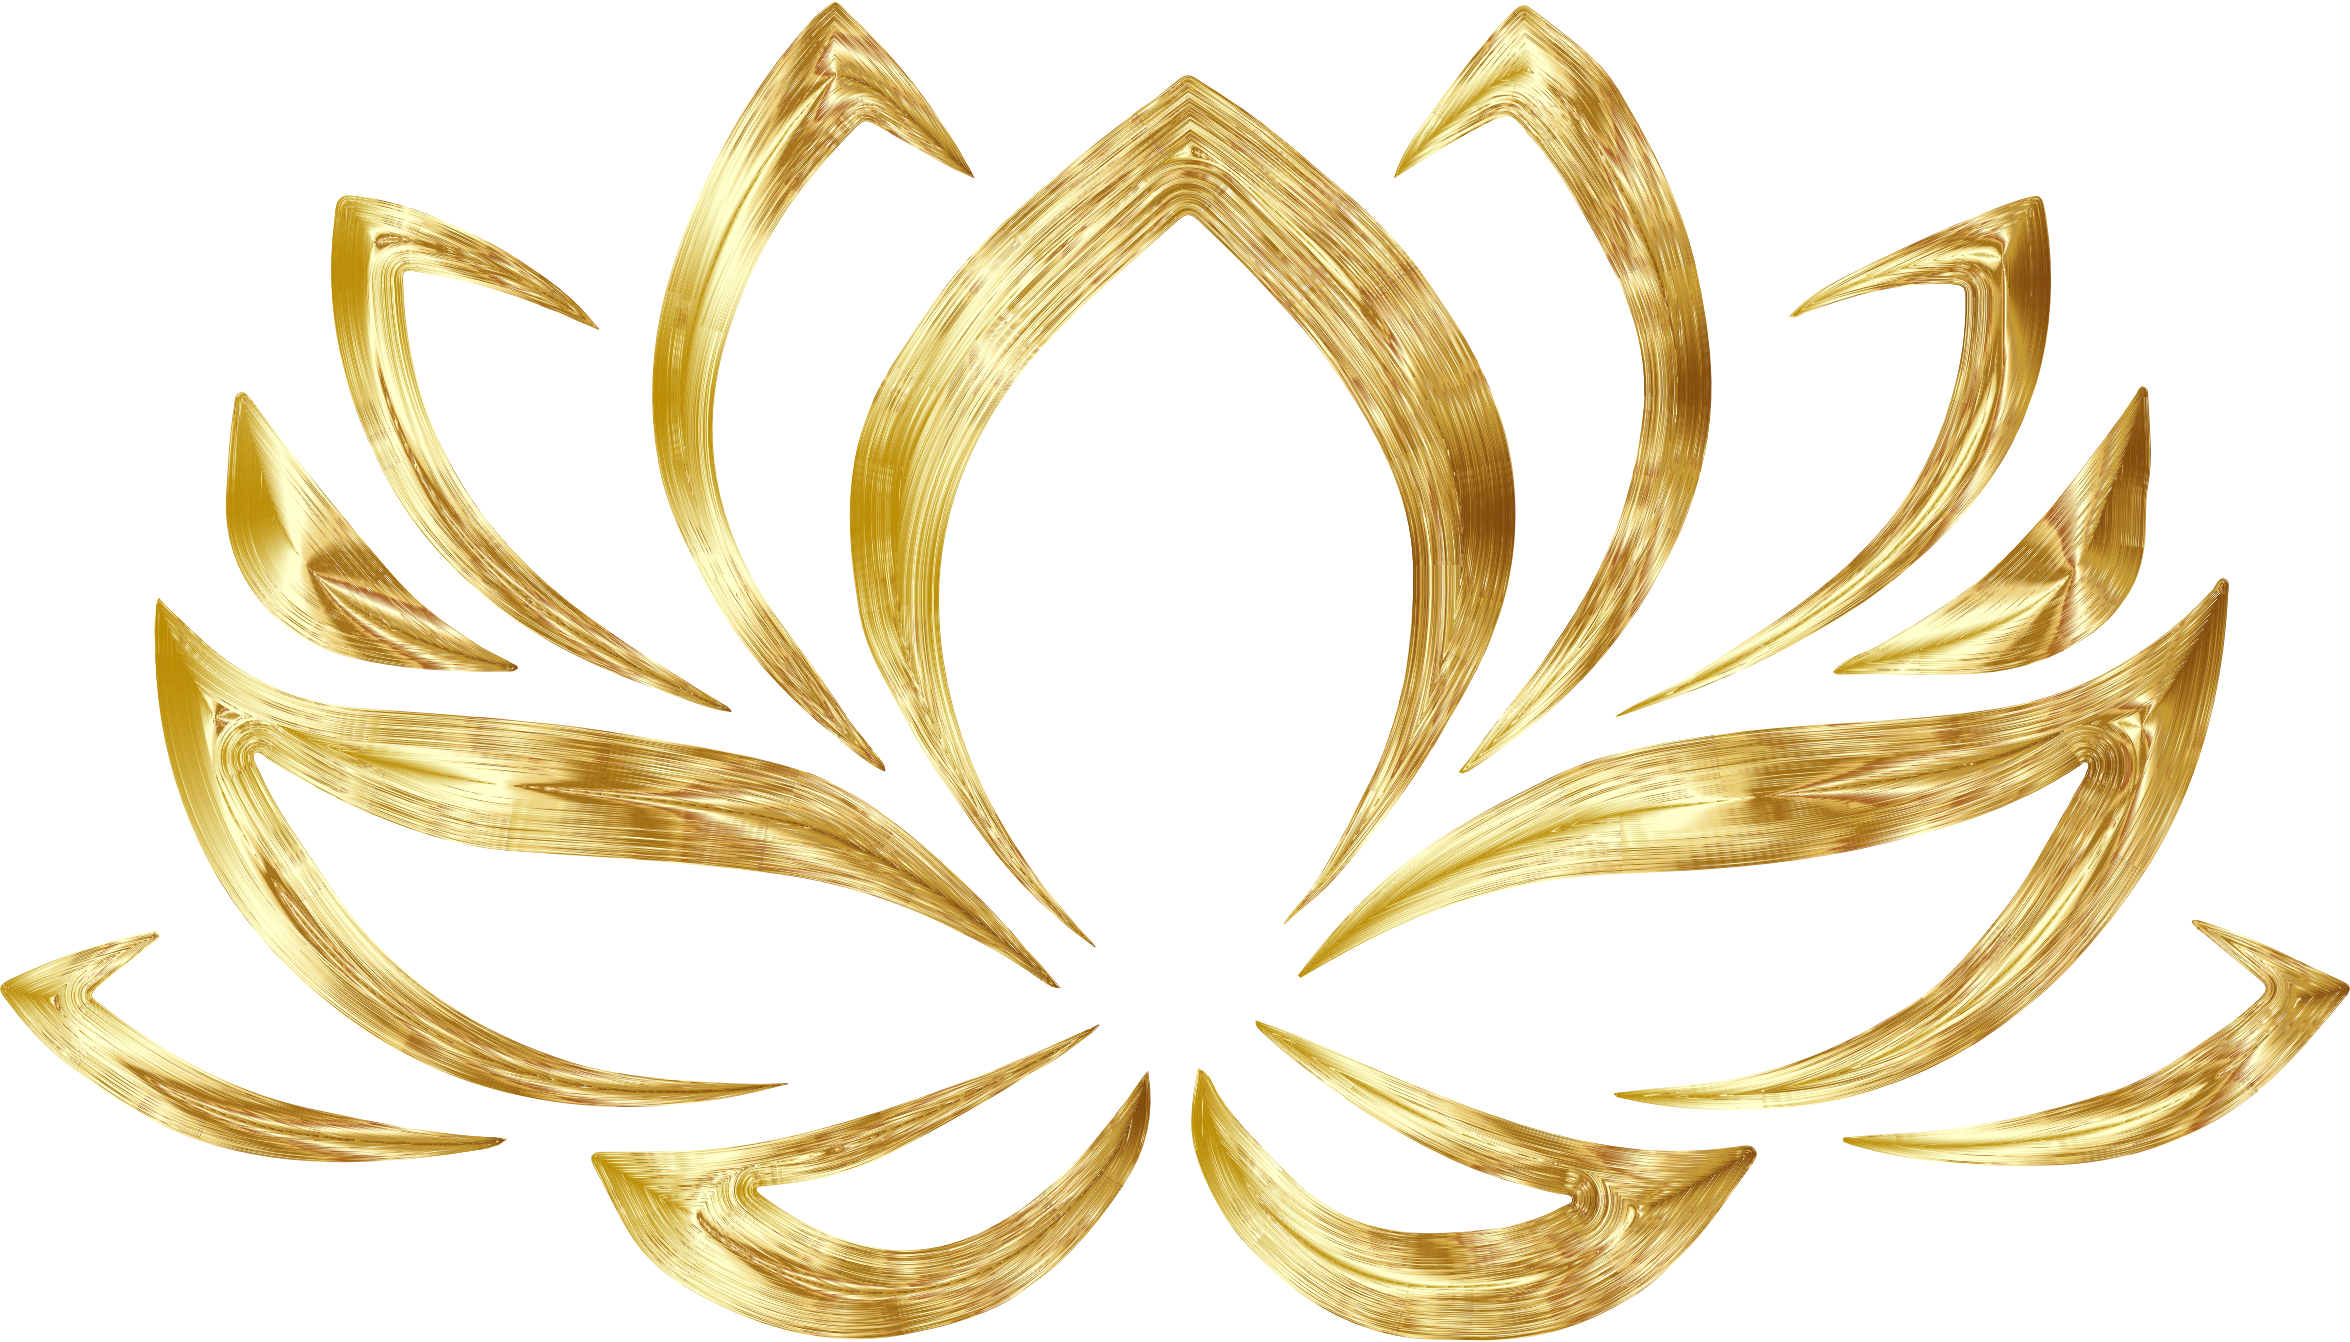 Lotus flower clipart png library library Clipart - Goldenized Lotus Flower png library library